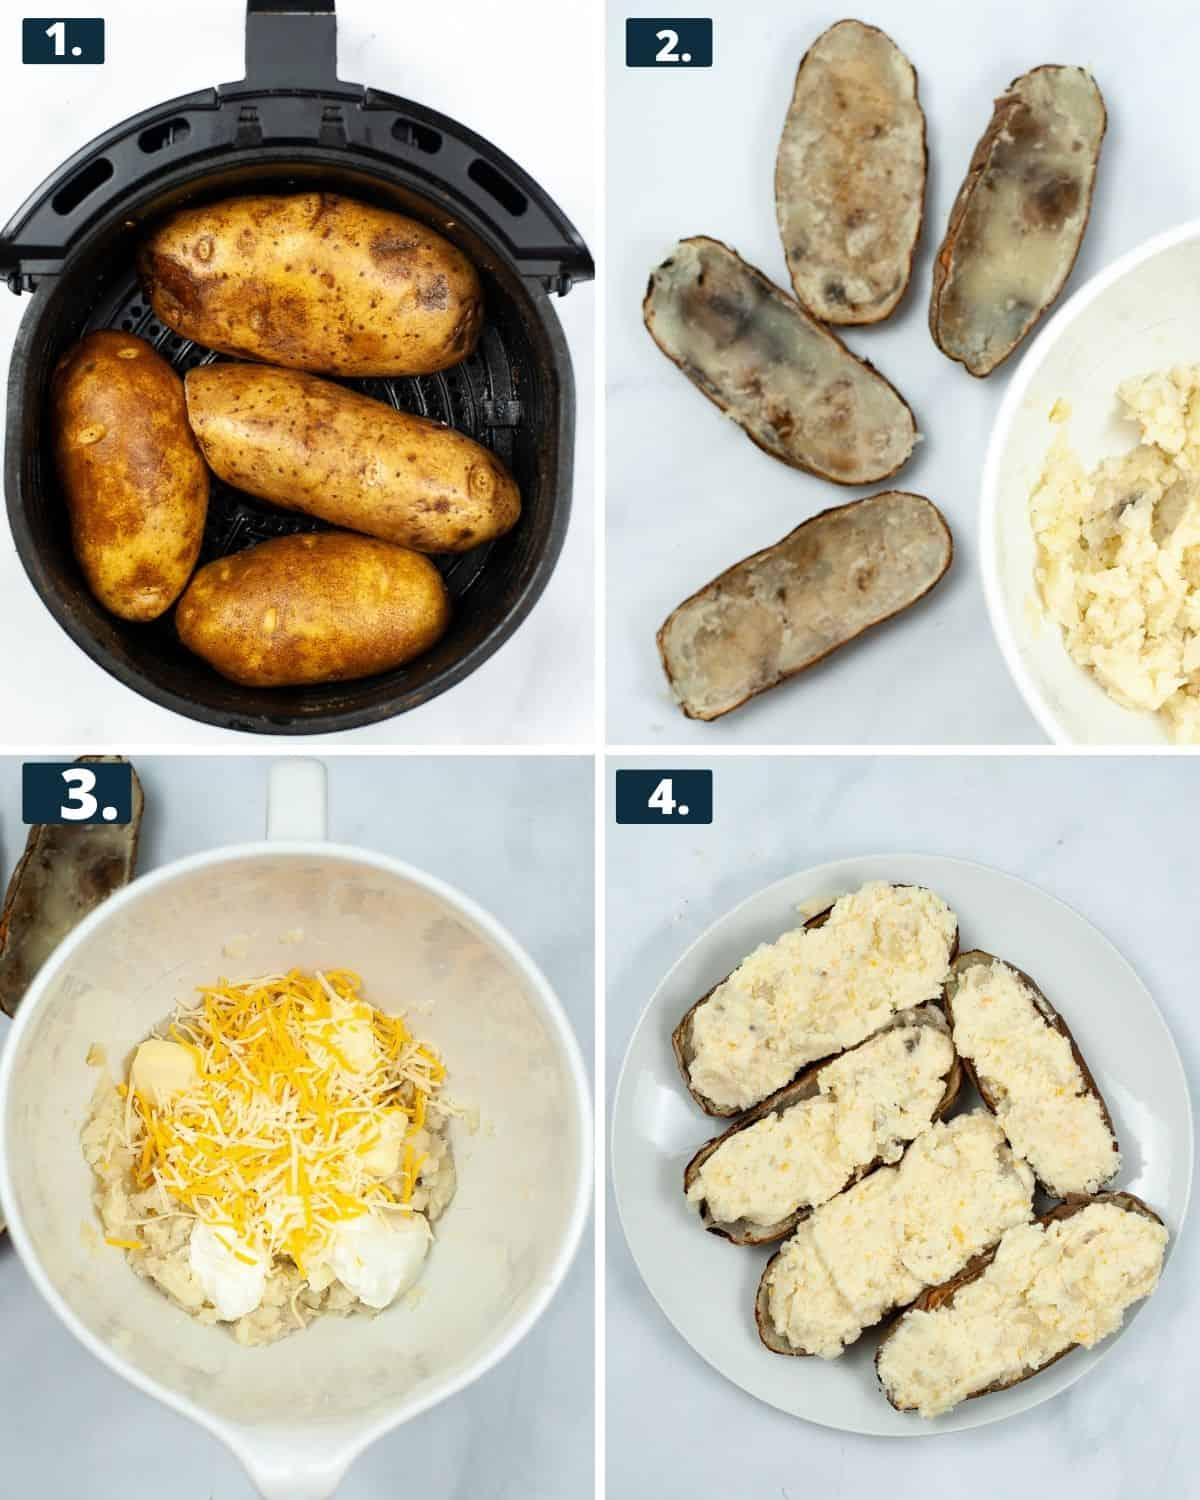 First 4 steps to make air fryer baked potatoes, 1 potatoes in the air fryer 2, Baked potatoes scooped put of all their pulp. 3. A large mixing bowl with potatoes, cheese, sour cream, heavy cream in a bowl, 4th photo, the stuffed potatoes with the cheesy filling.